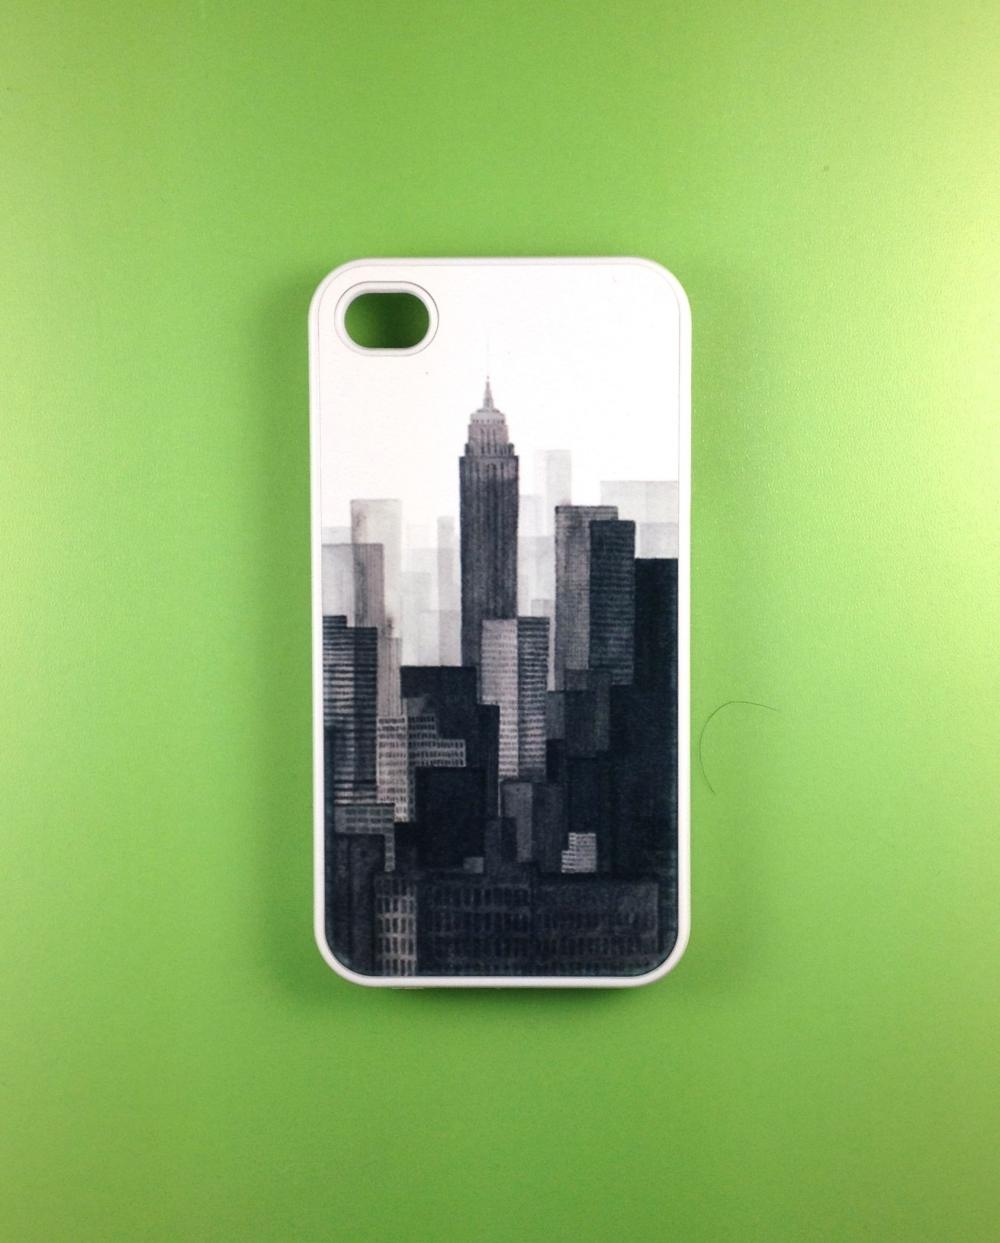 iphone 4 case vintage ny city iphone 4s case iphone. Black Bedroom Furniture Sets. Home Design Ideas